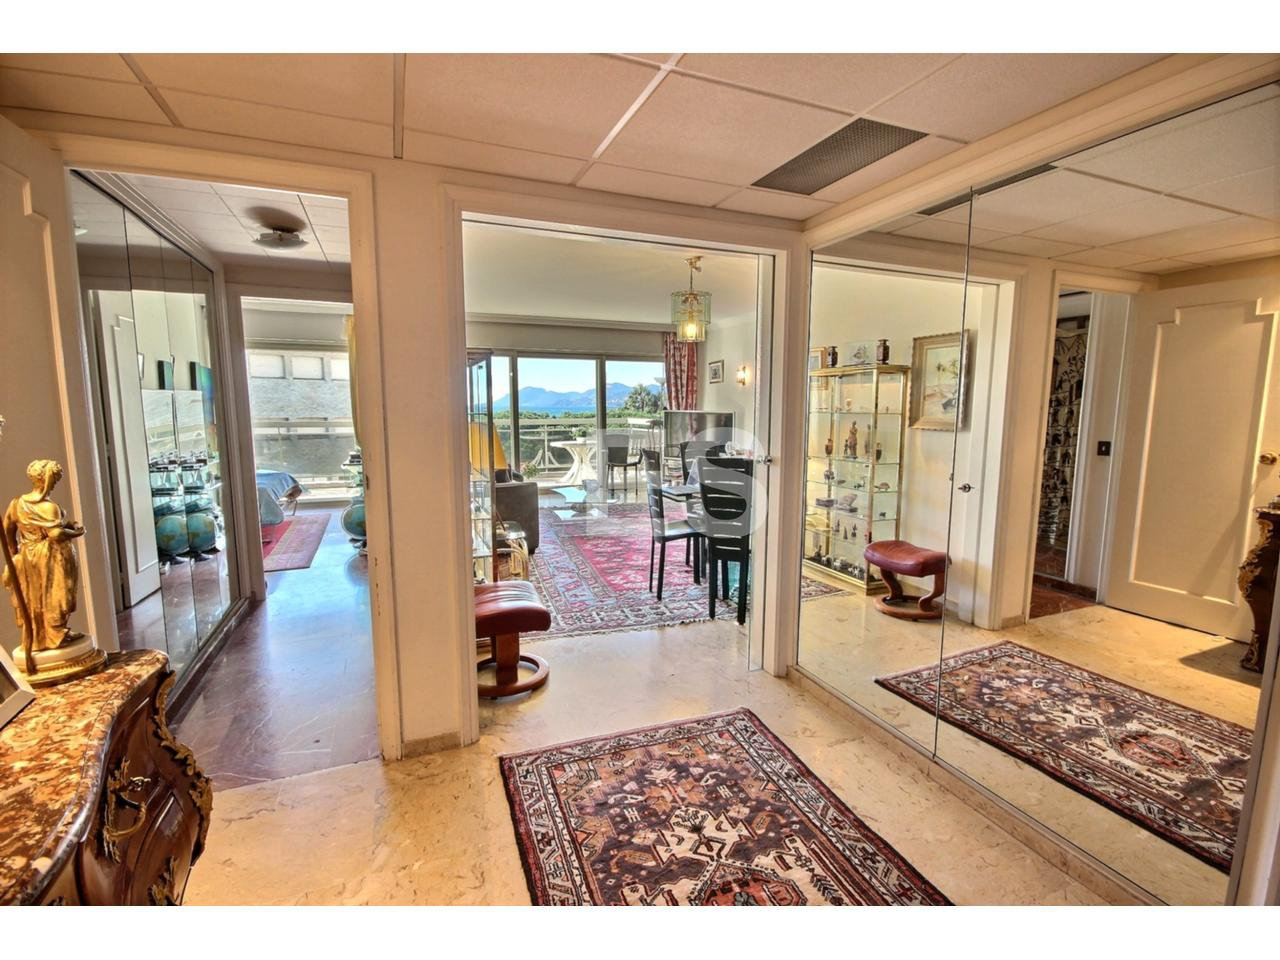 Property for sale Cannes Croisette  3 Rooms 87 m²